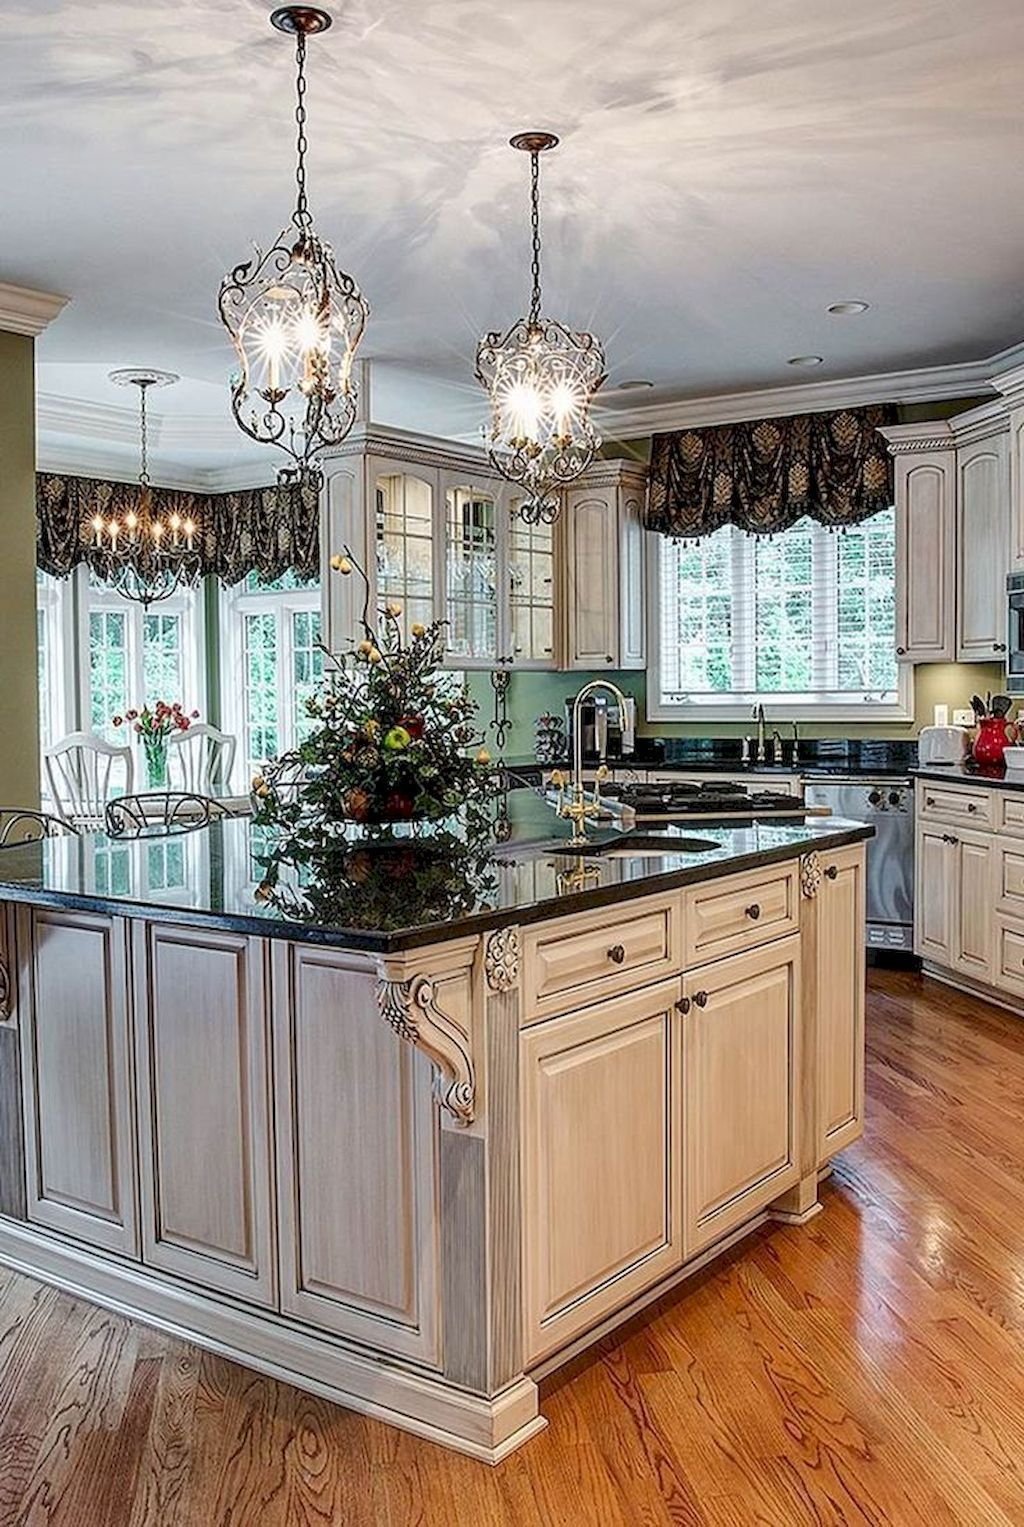 11 simple french country kitchen decor ideas country kitchen lighting country kitchen designs on kitchen ideas elegant id=40596